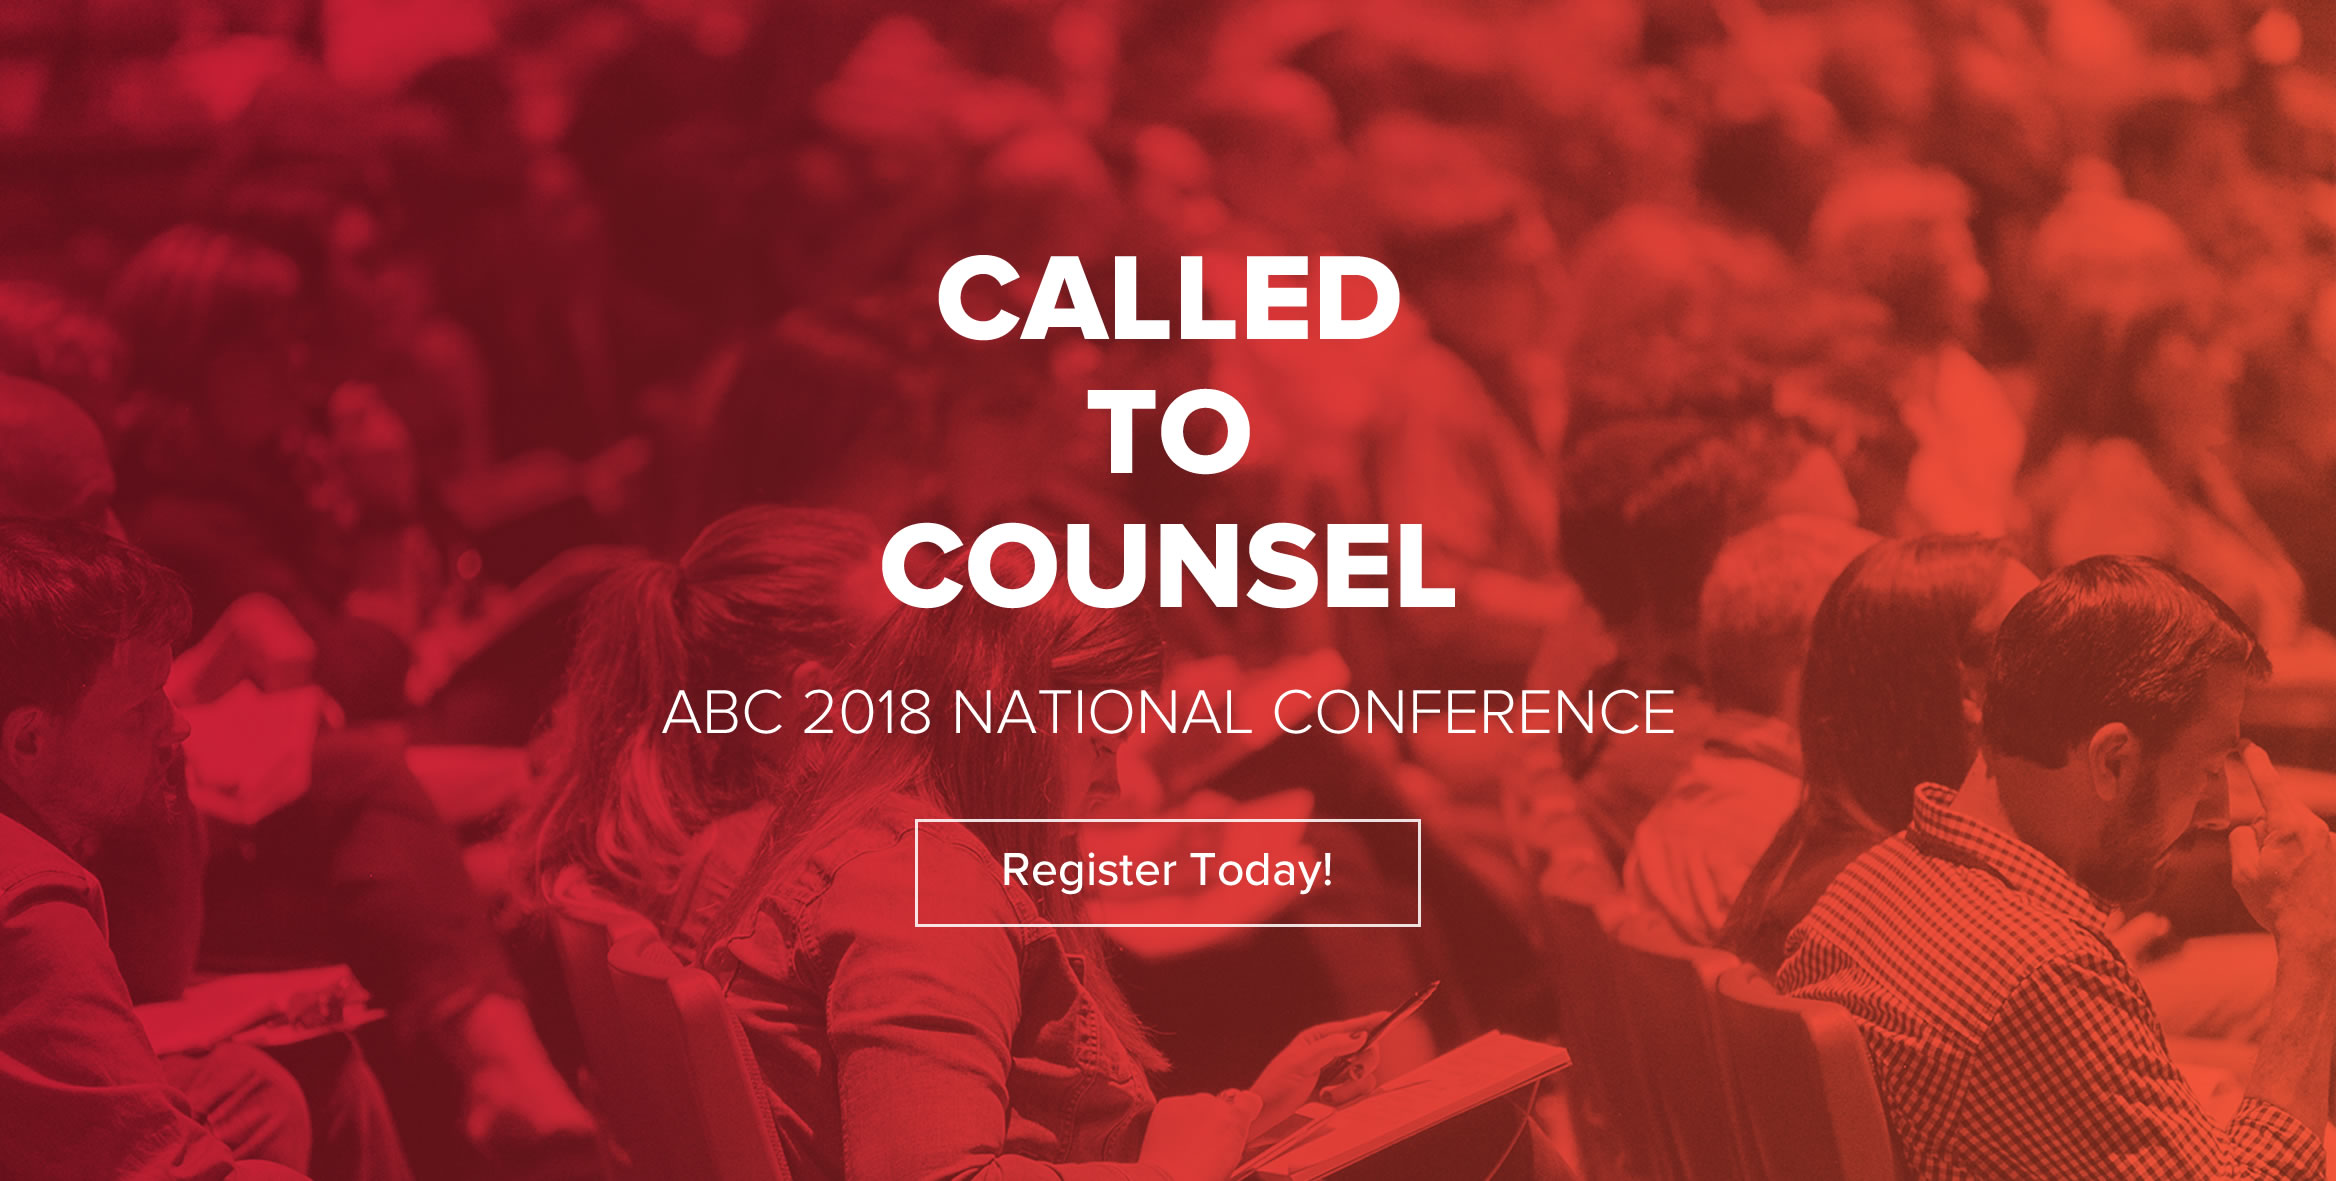 ABC 2018 National Conference